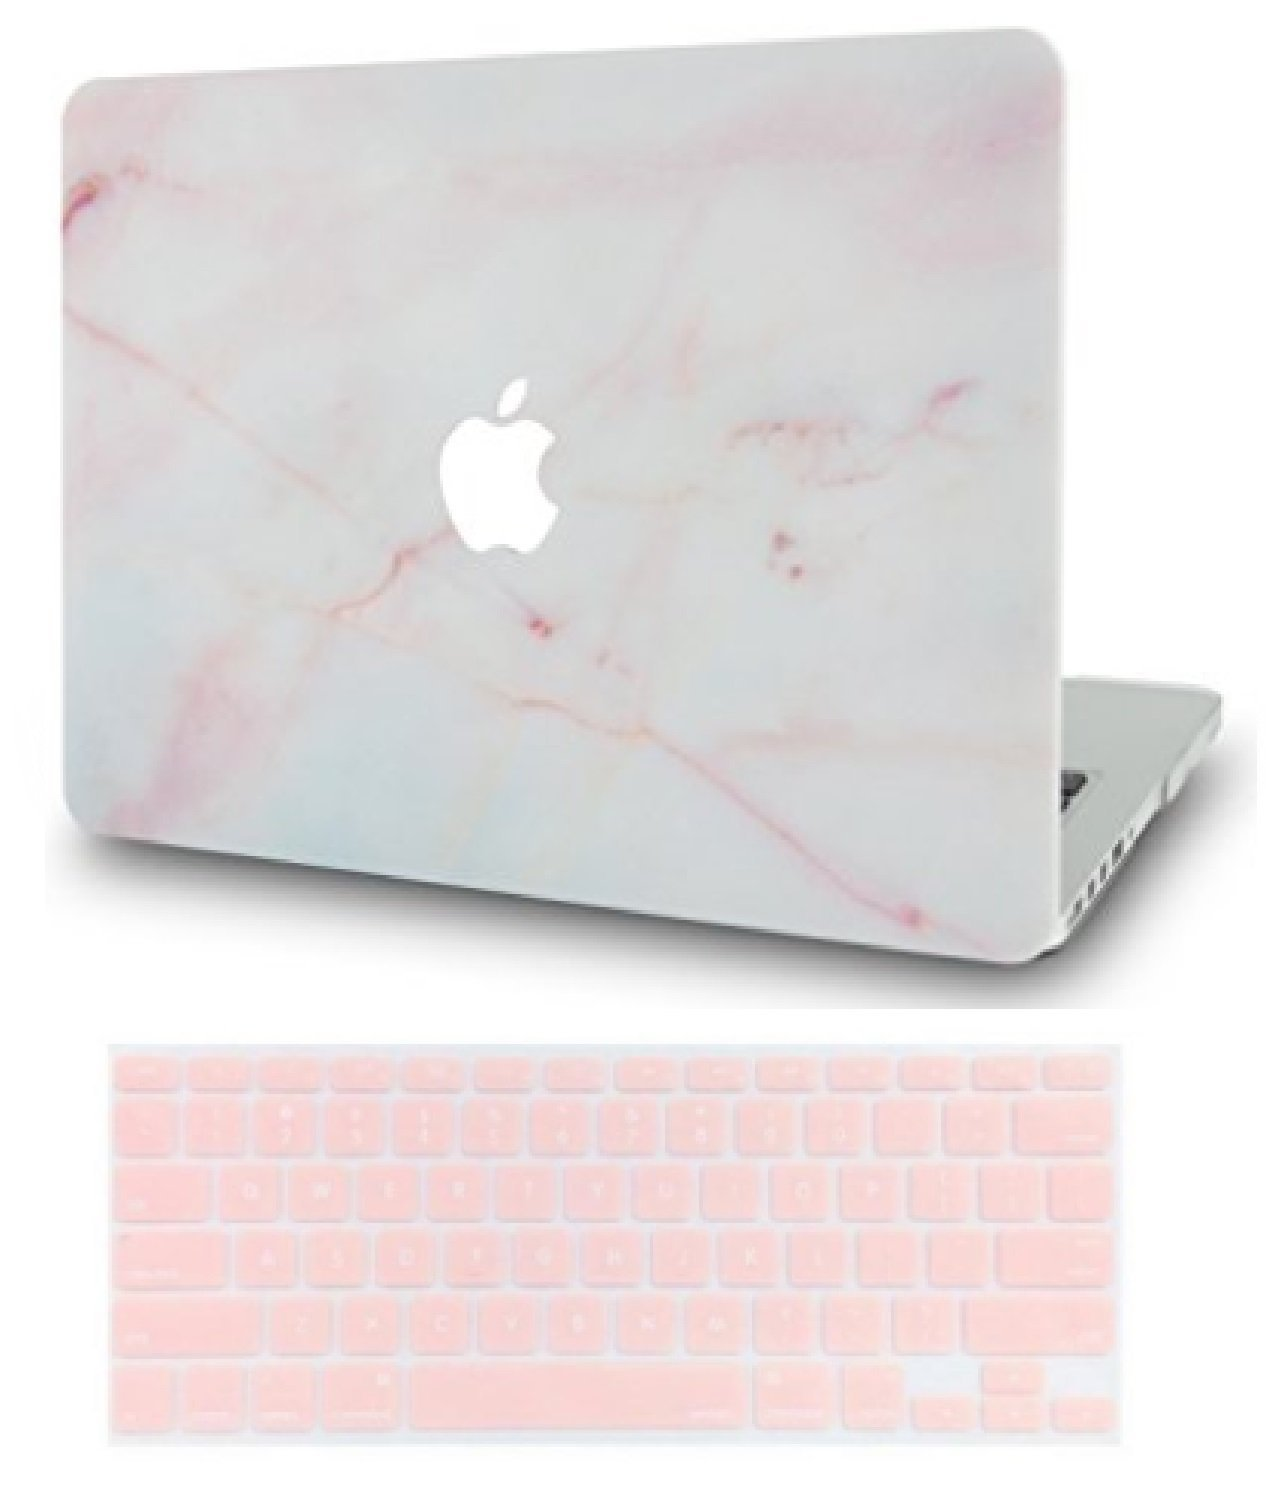 LuvCase Rubberized Plastic Hard Shell Case Cover Keyboard Cover Compatible MacBook Air 13 inch A1466 & A1369 (Pink Marble)